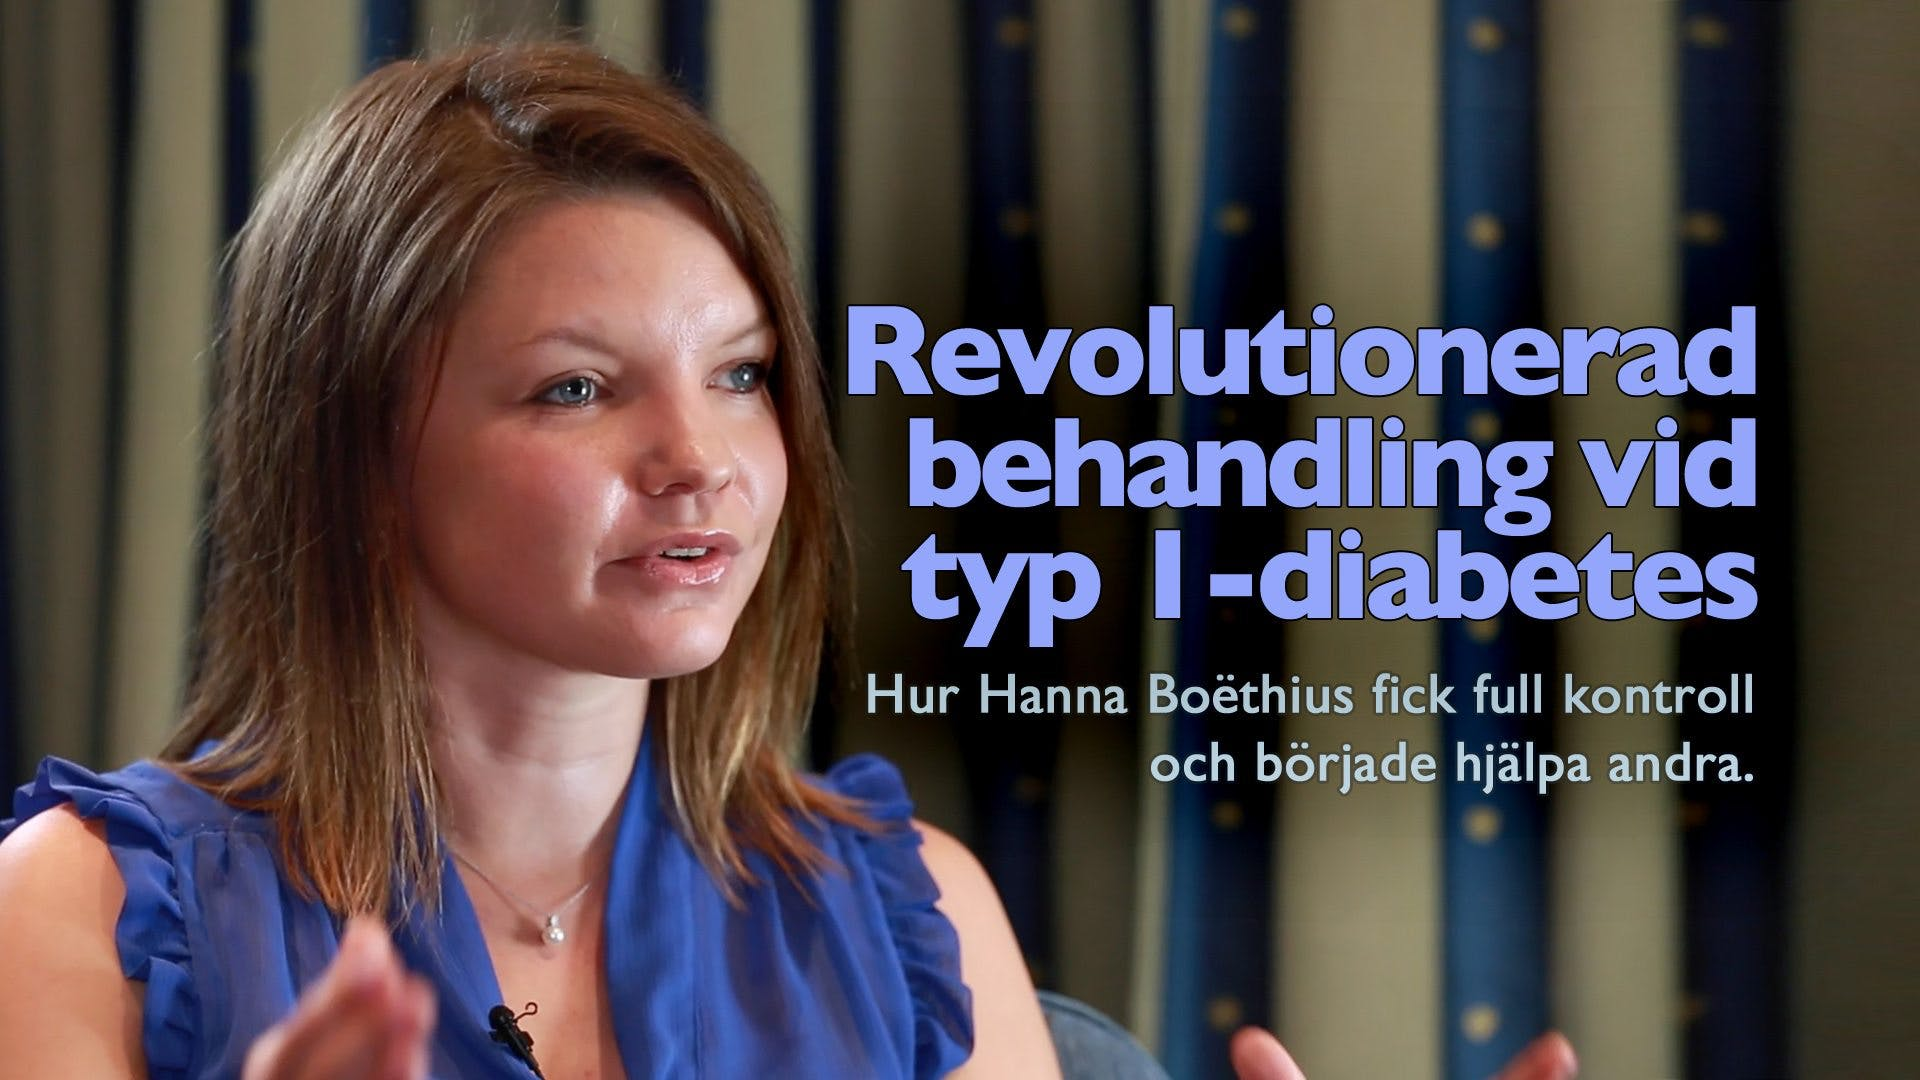 A Revolutionary Treatment of Type 1 Diabetes – Hanna Boëtius